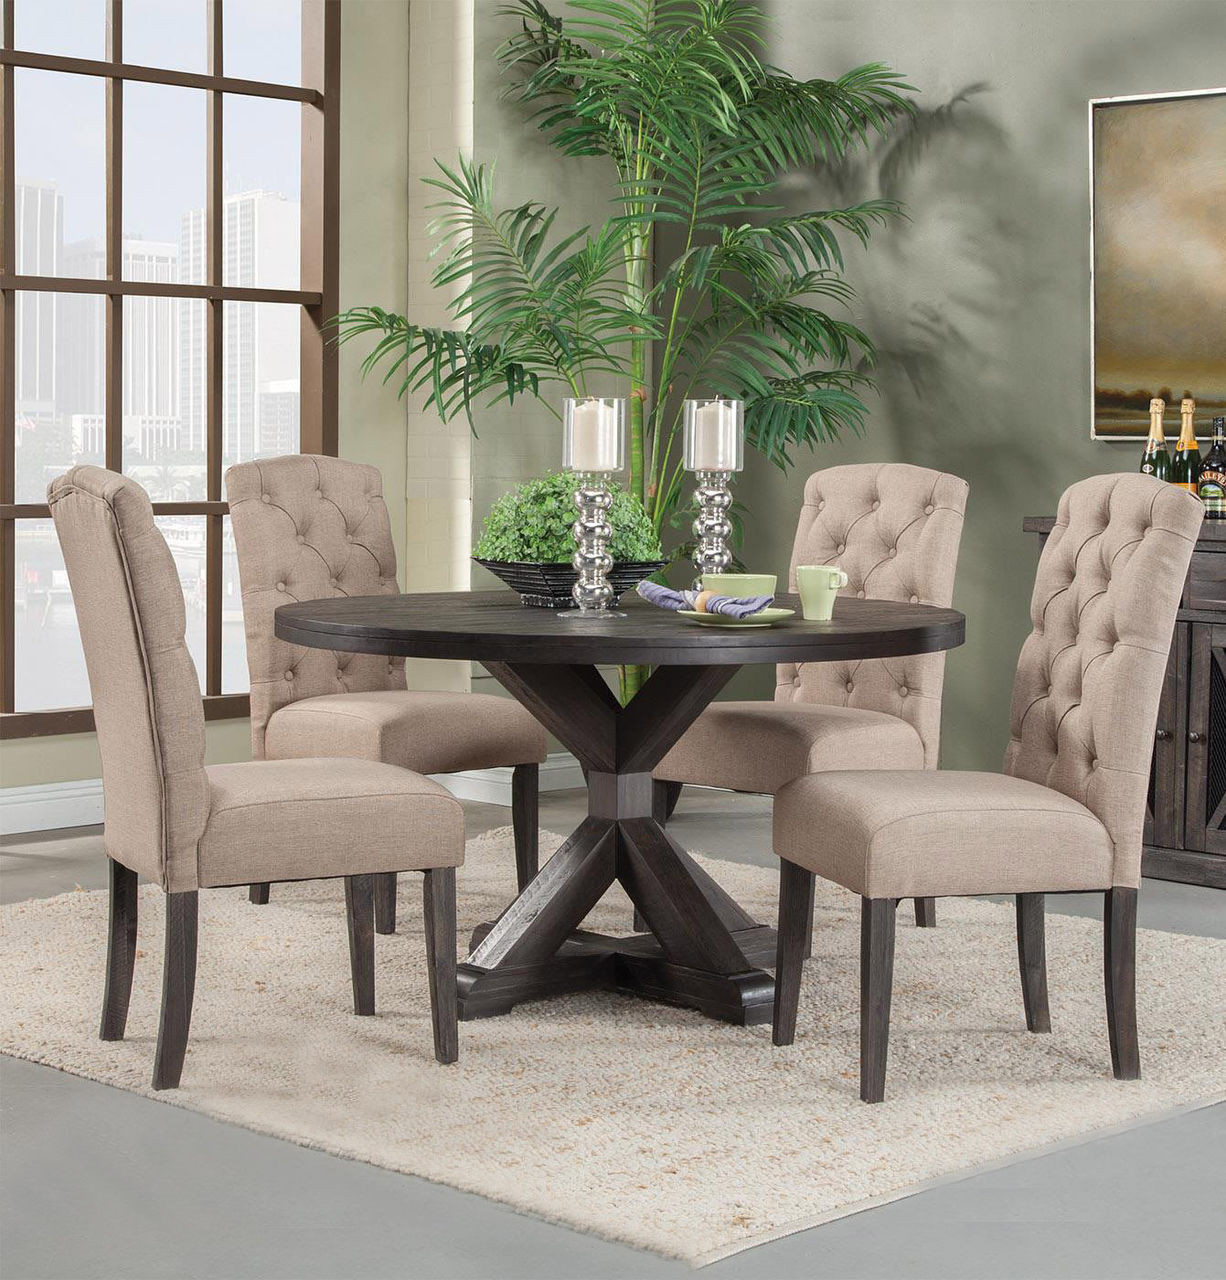 Alpine Newberry 54 Quot Round Dining Room Table Set In Salvaged Grey